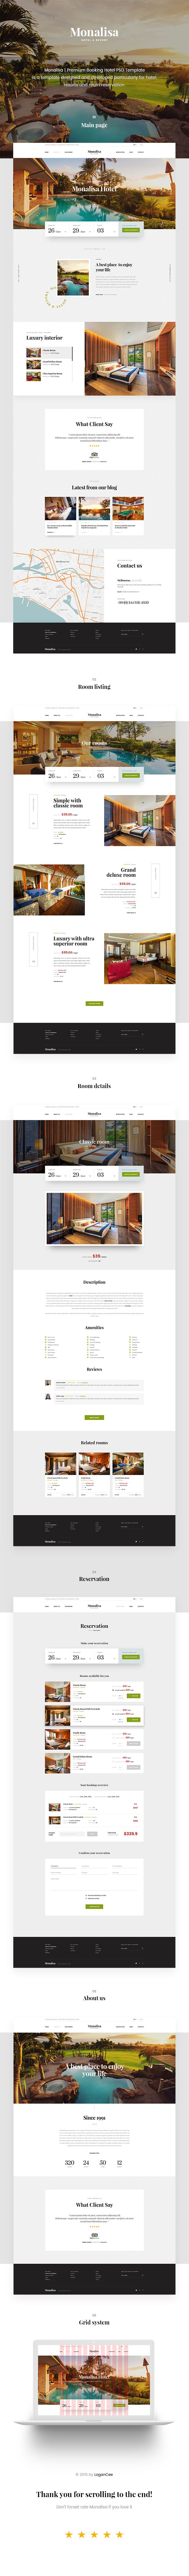 Monalisa | Premium Booking Hotel PSD Template is a template designed and developed particularly for hotel, resorts and room reservation. With clean and trendy design, the great combination between ...